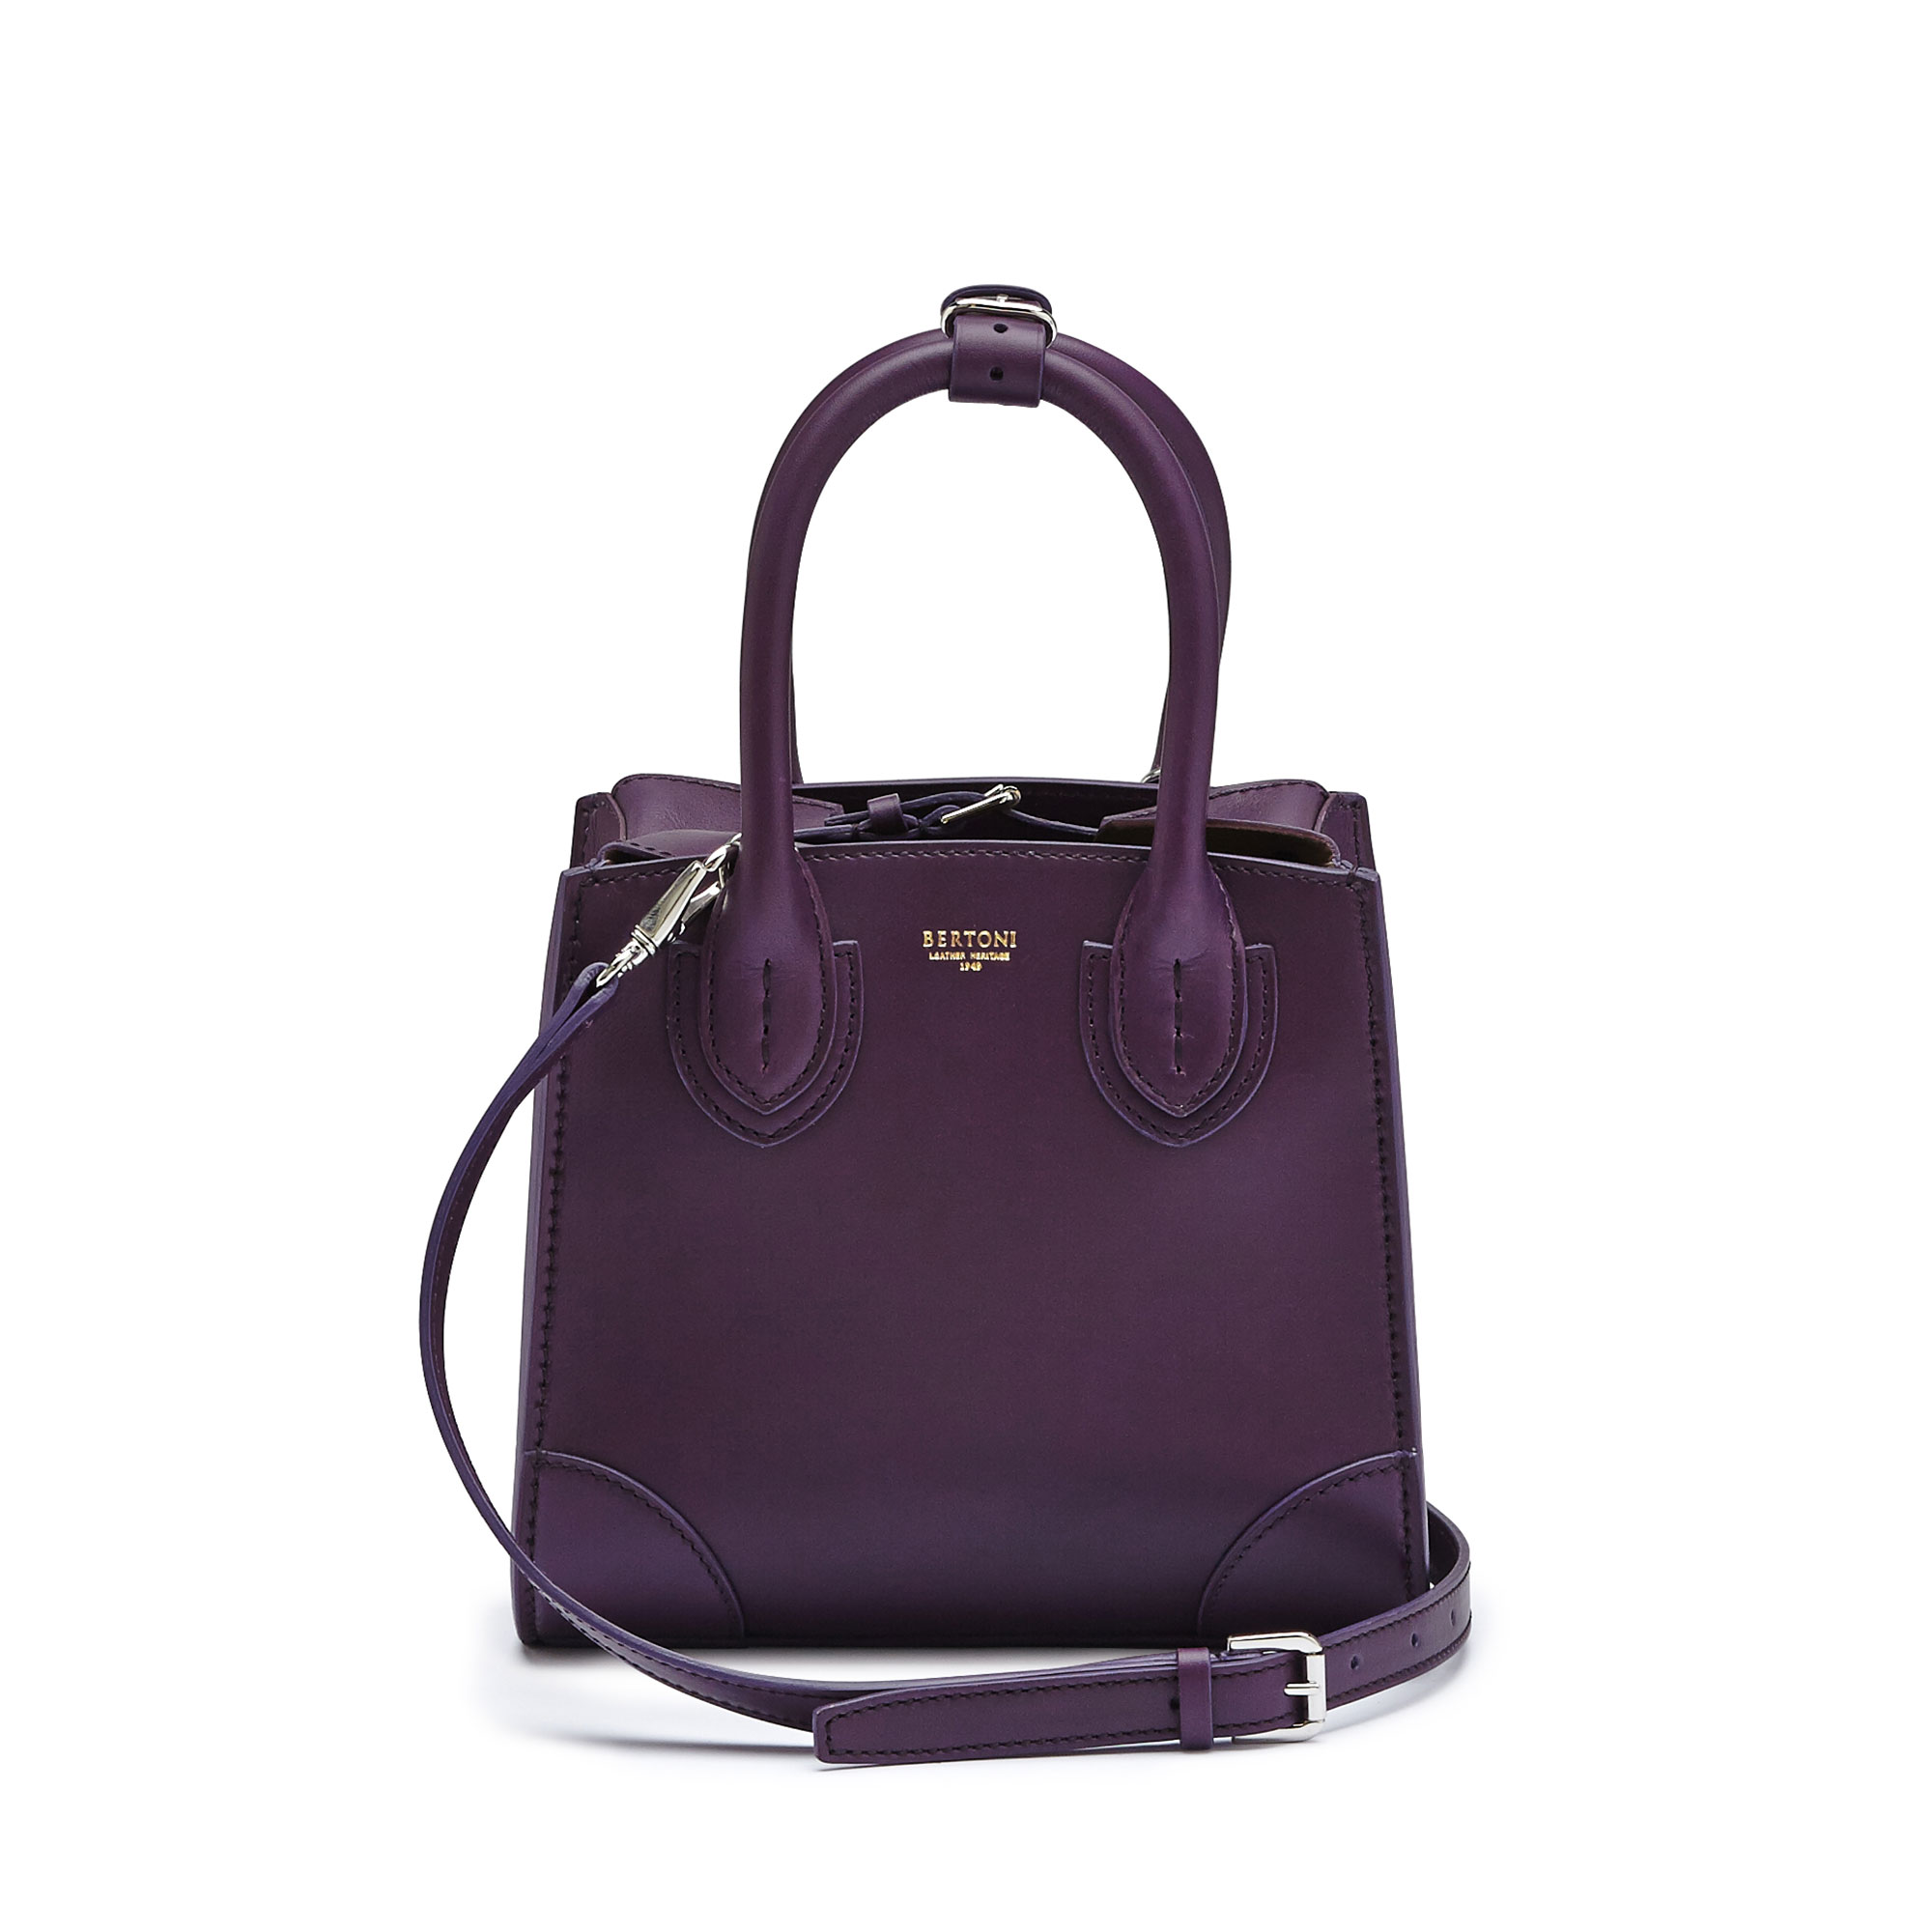 The aubergine color french calf Darcy small bag by Bertoni 1949 02